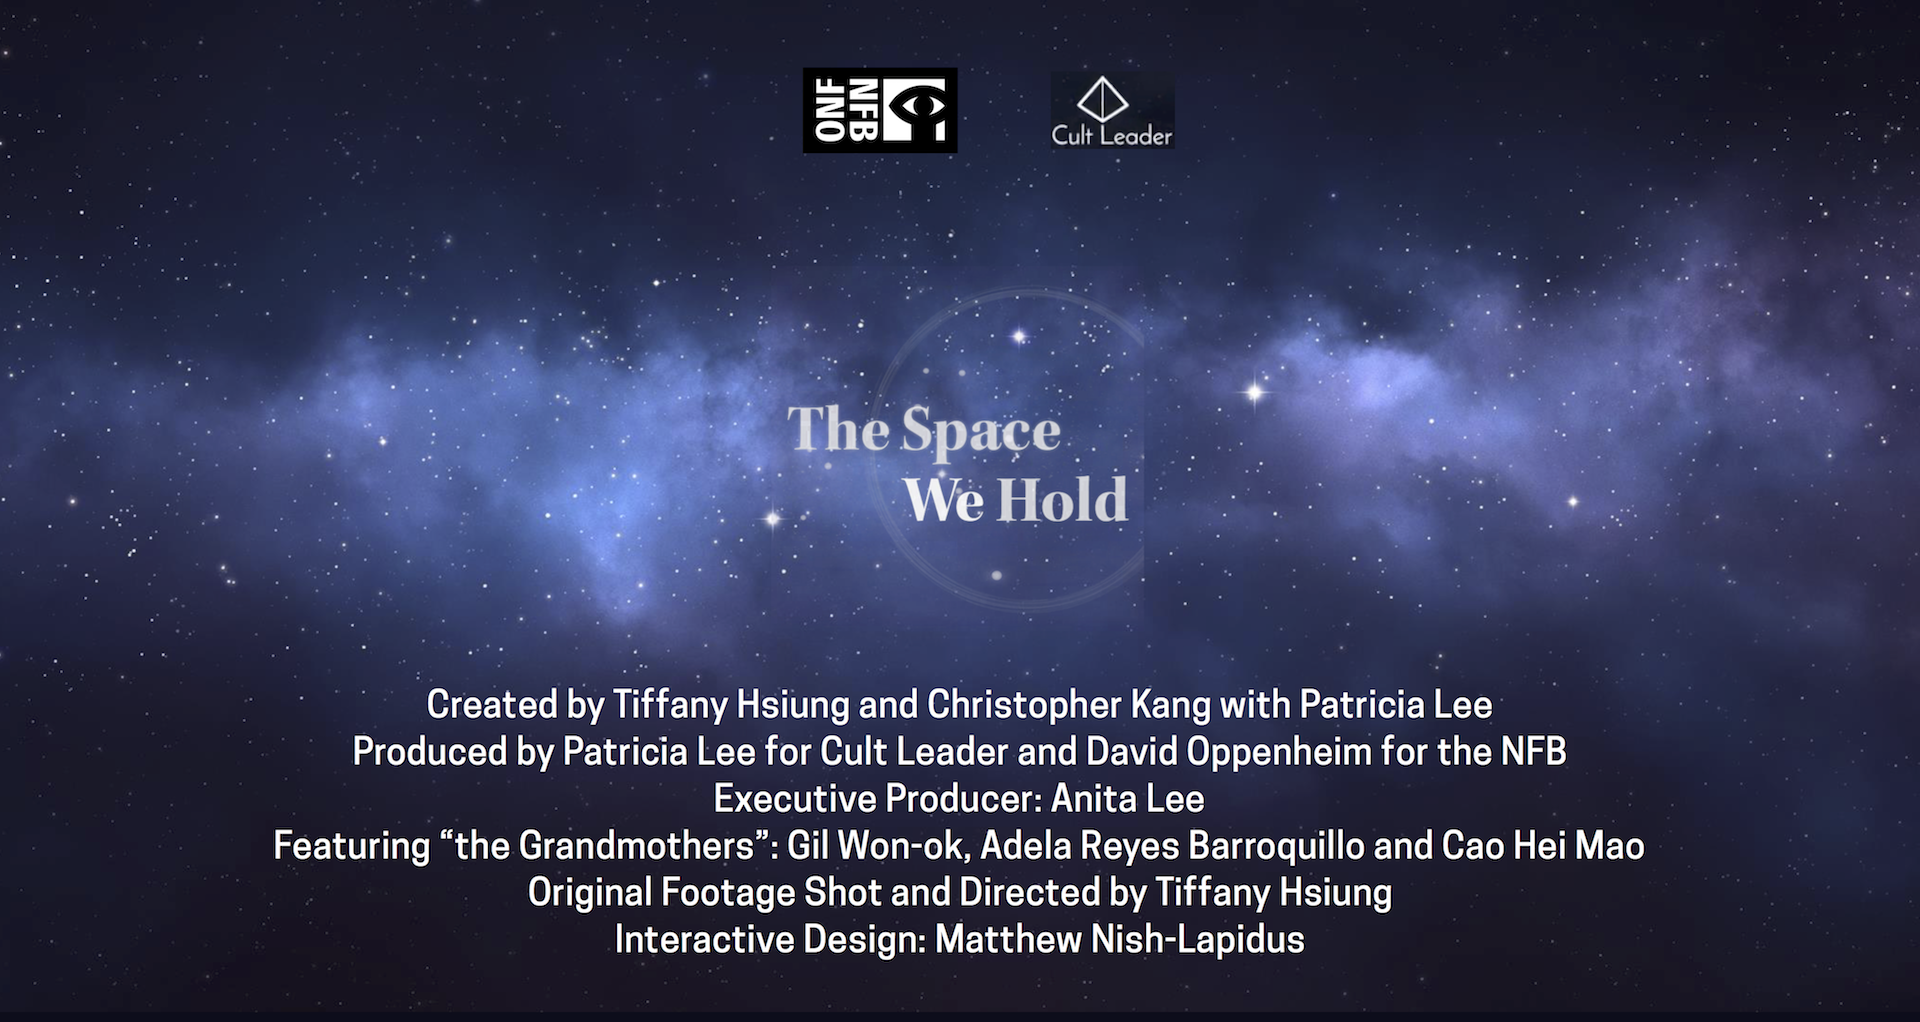 The Space We Hold credits